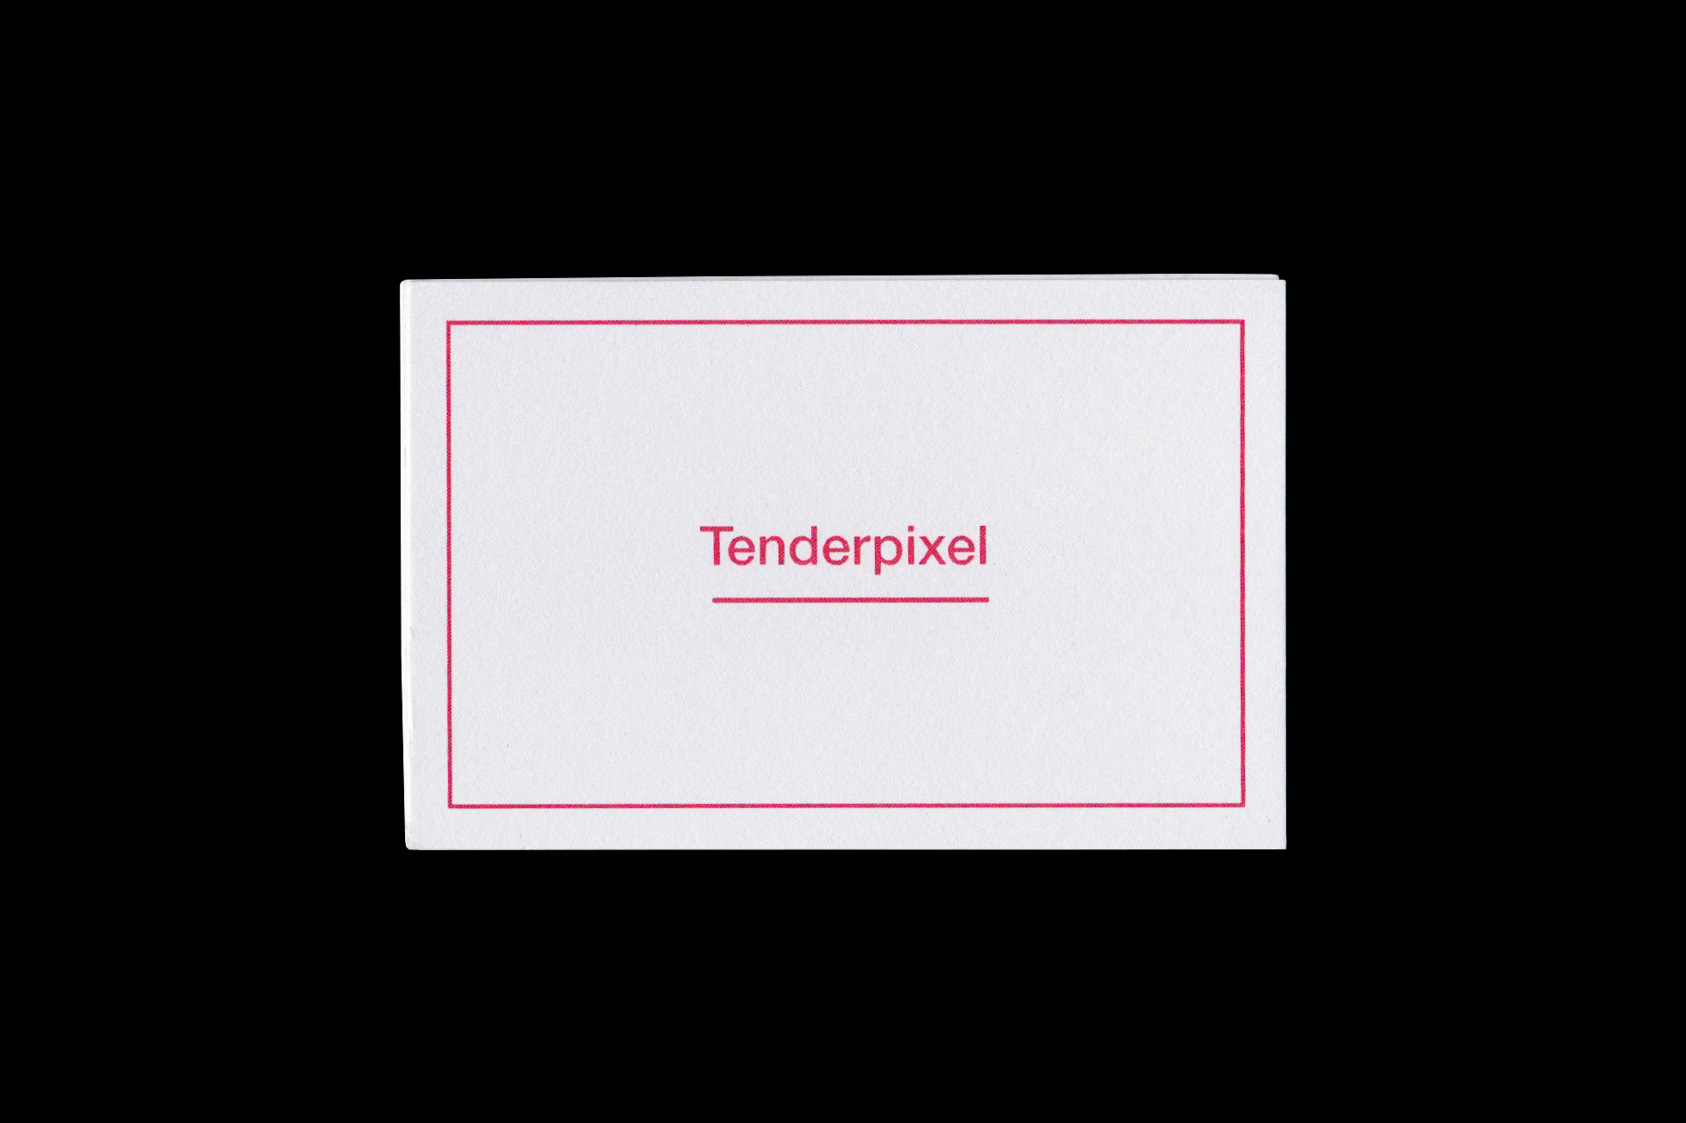 Tenderpixel identity  by the agency for emerging ideas